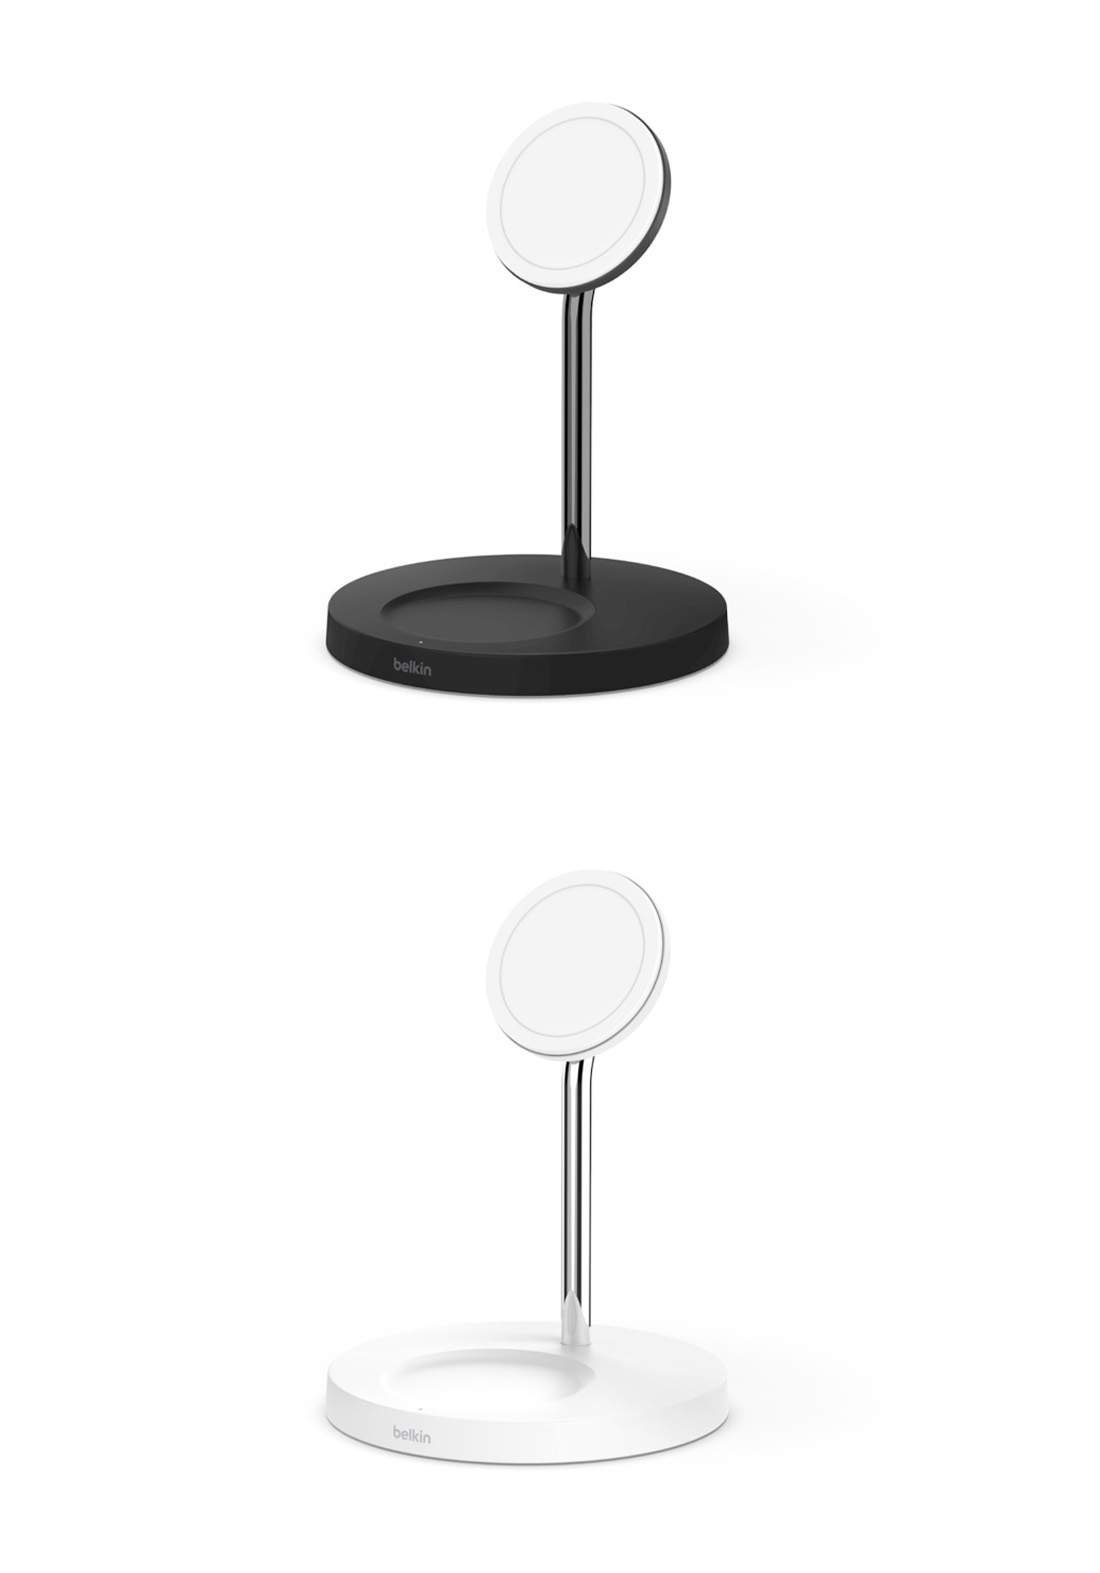 Belkin Boost Charge PRO 2-in-1 wireless Charging Stand + AC power adapter